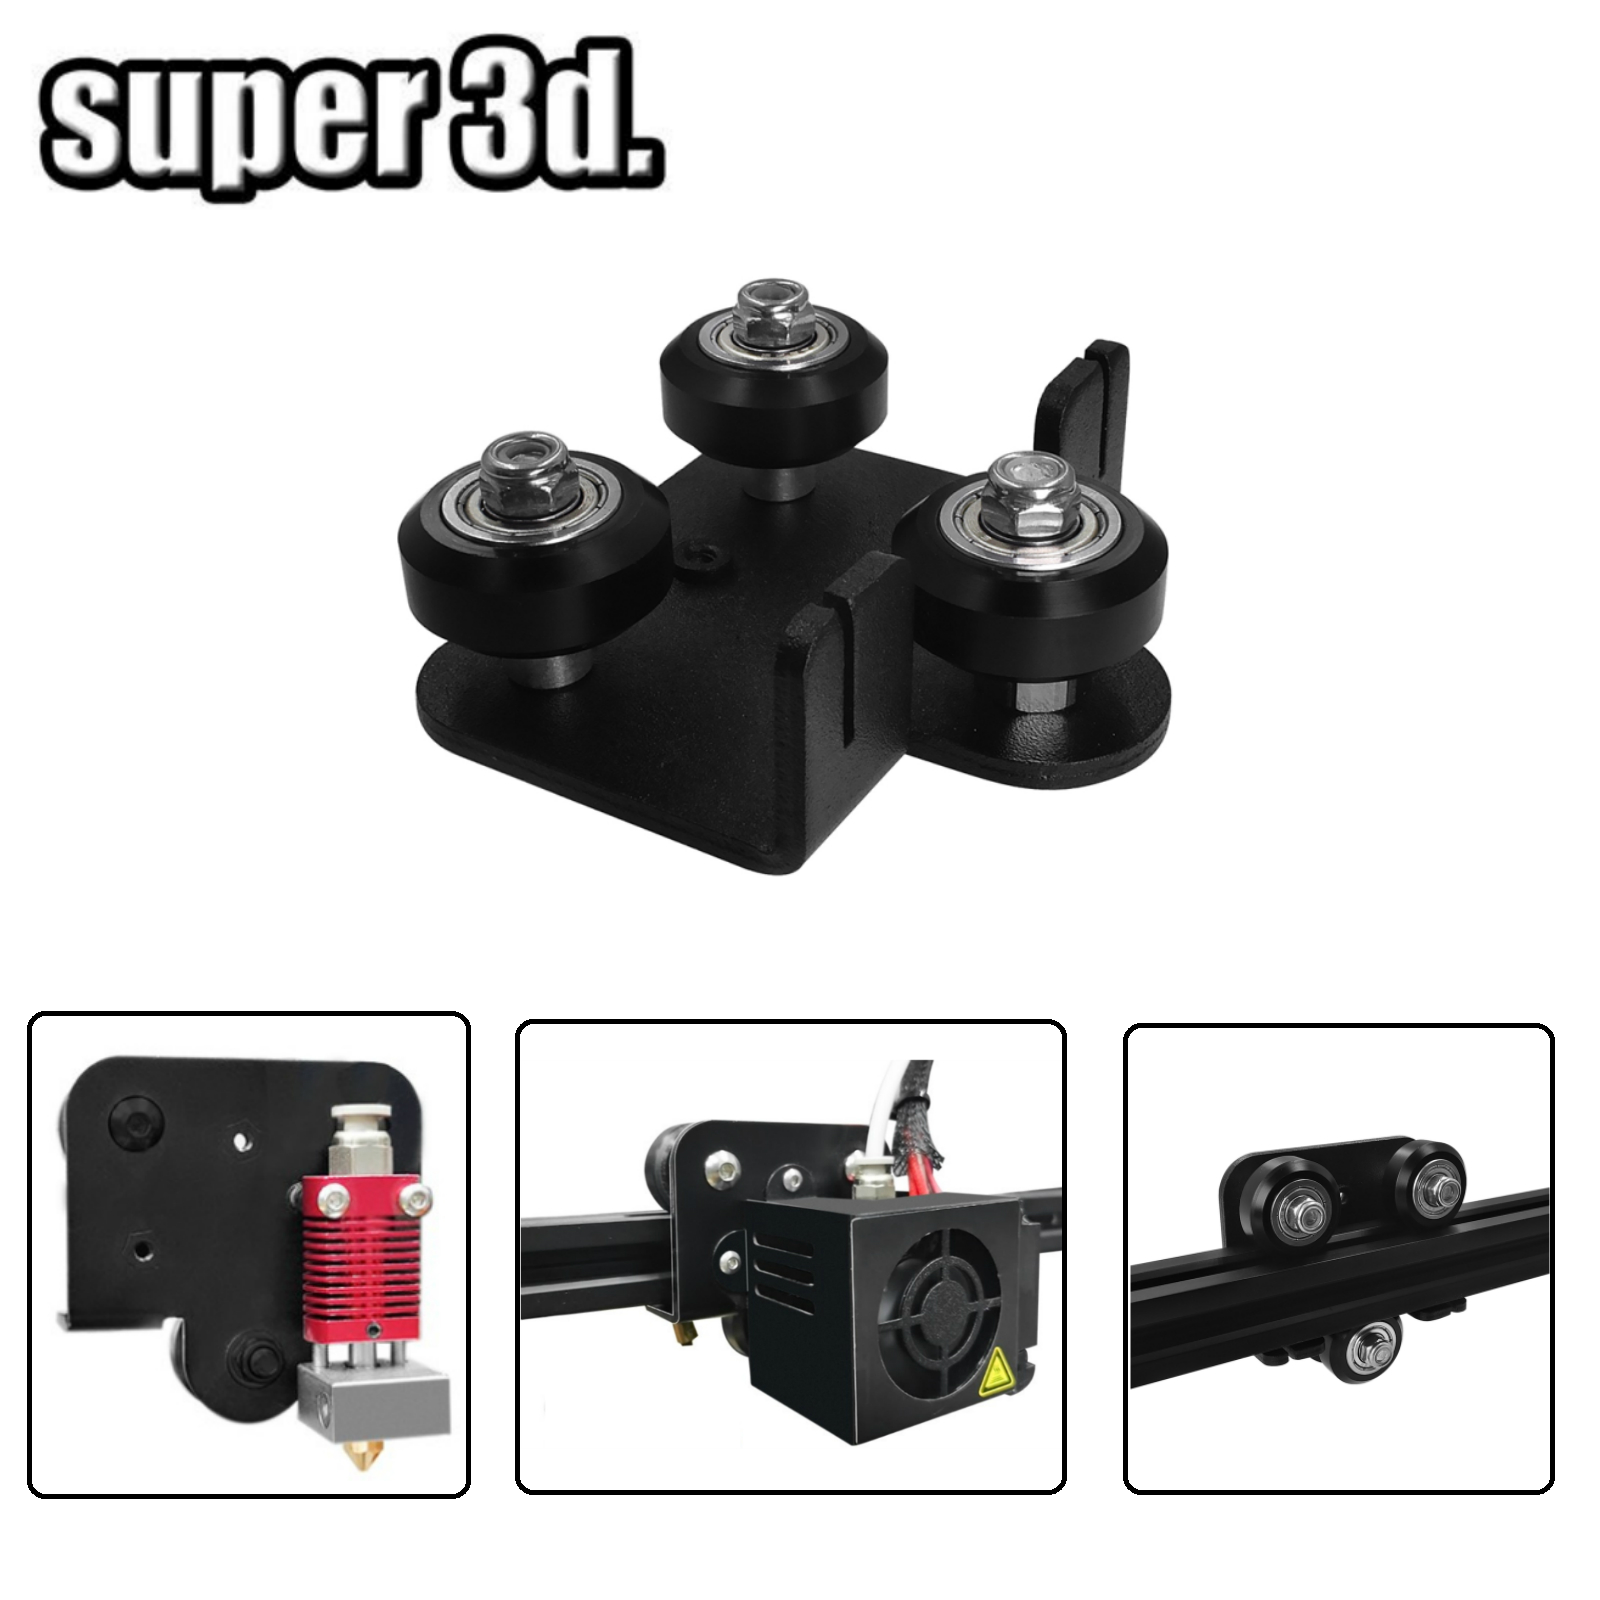 Extruder Back Support Plate Kit With Bearing Pulley Backplate For Creality CR-10 10s Ender 3 S4 S5 Series/ TEVO Anet 3D Printers